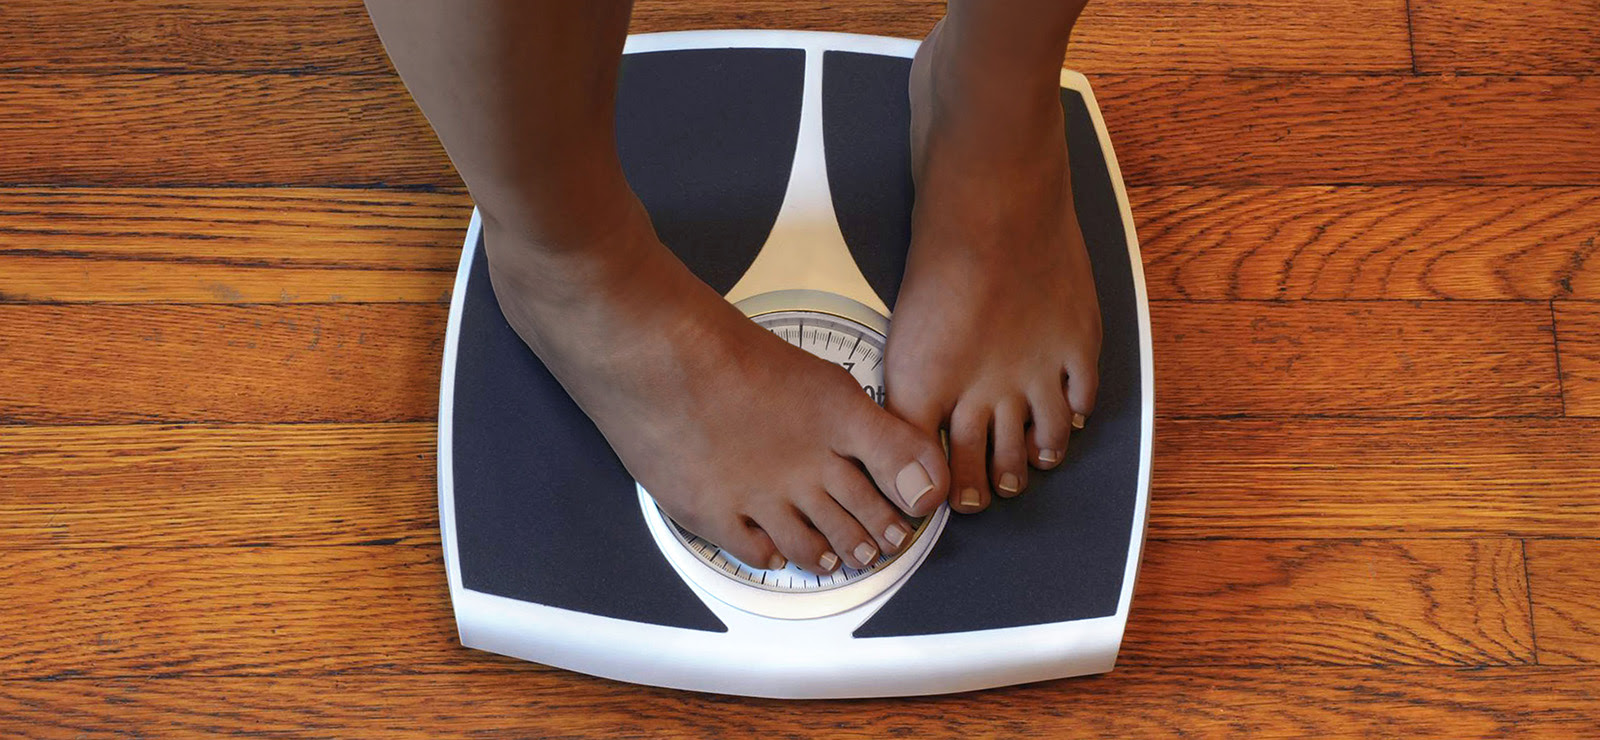 Pandemic Weight Gain — It's a Thing